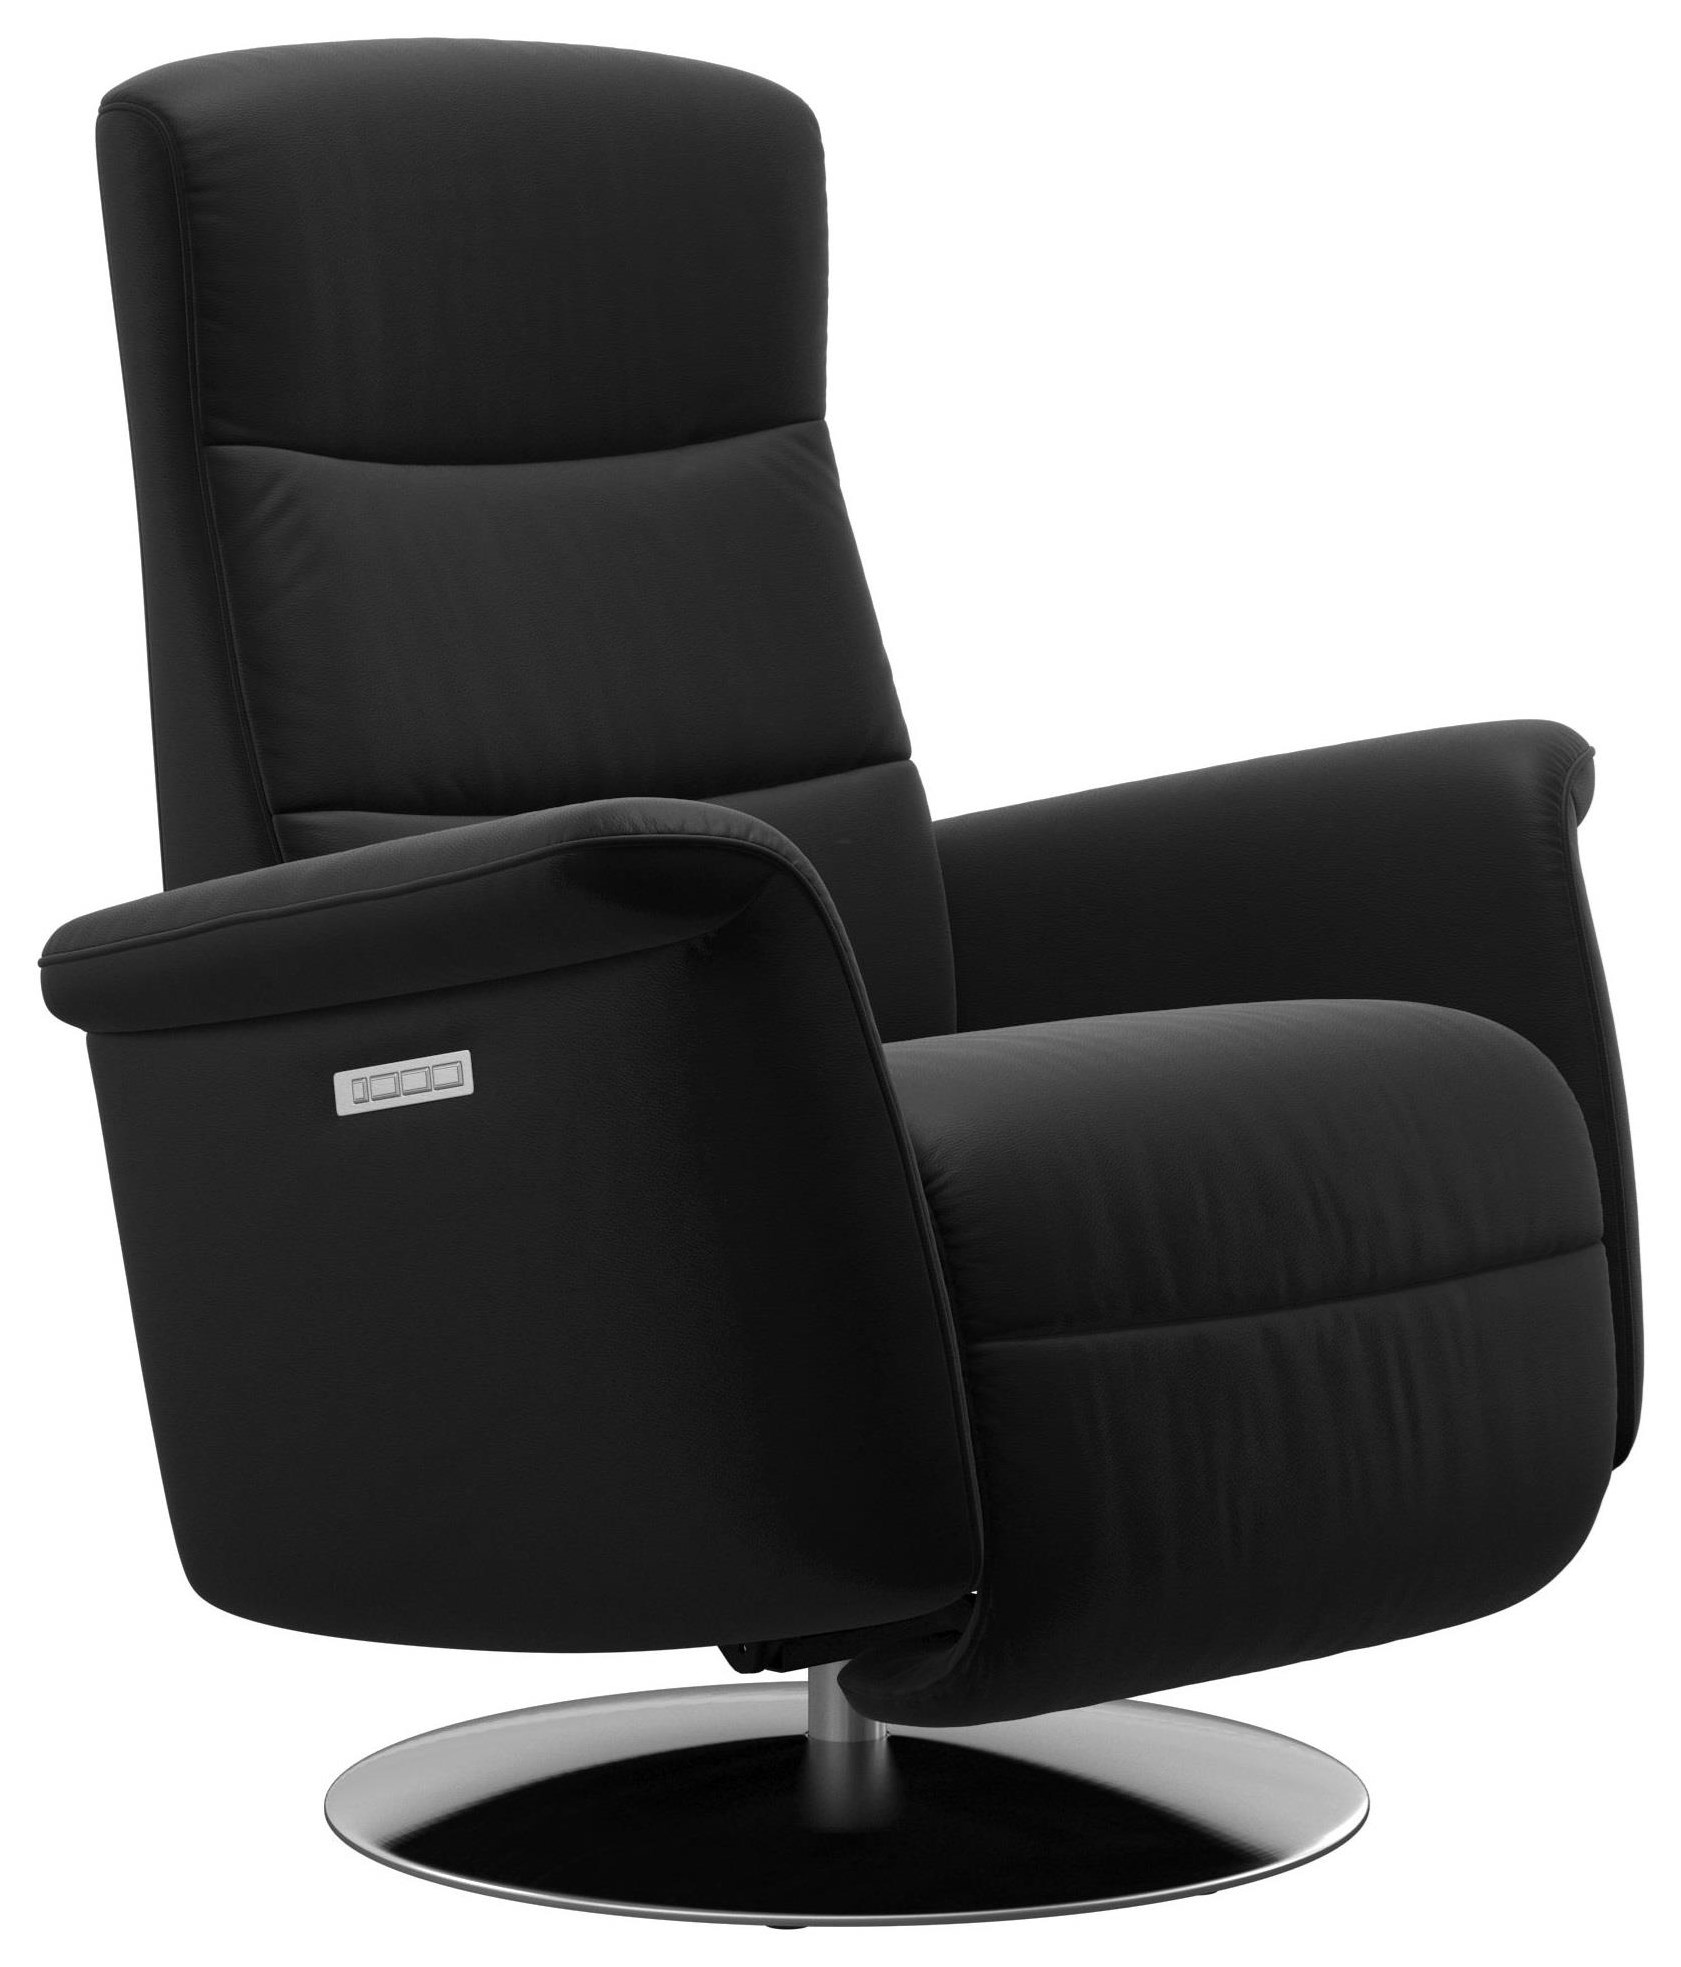 Mike Small Power Recliner by Stressless at Bennett's Furniture and Mattresses